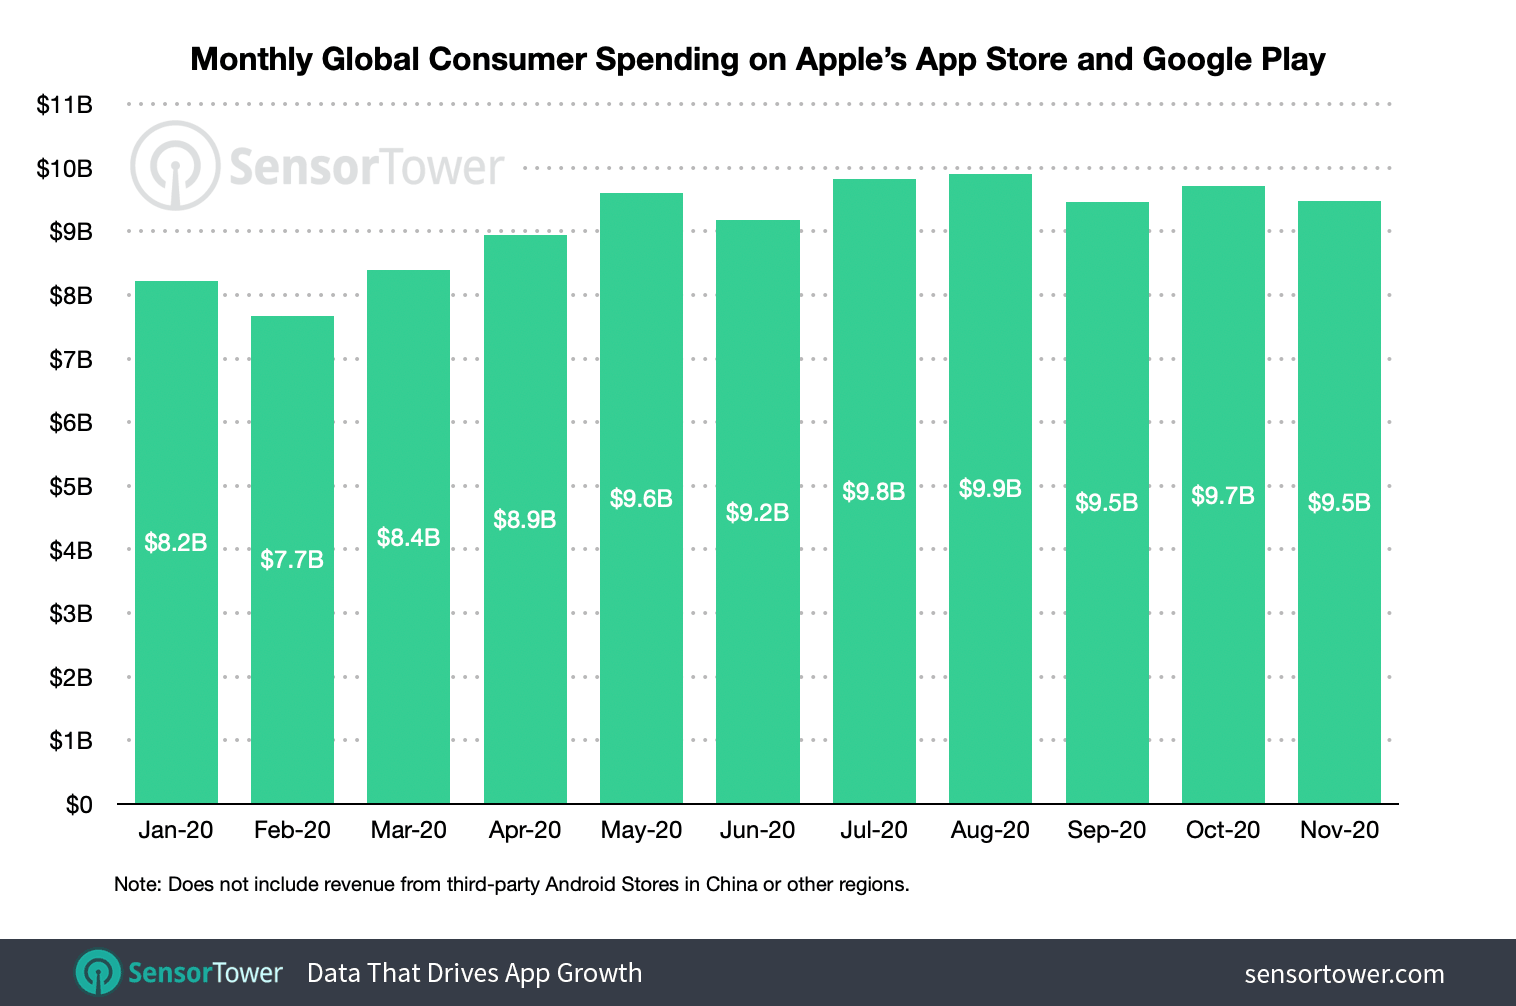 Consumers spent approximately $106 billion across the App Store and Google Play globally from January 1 to December 17.